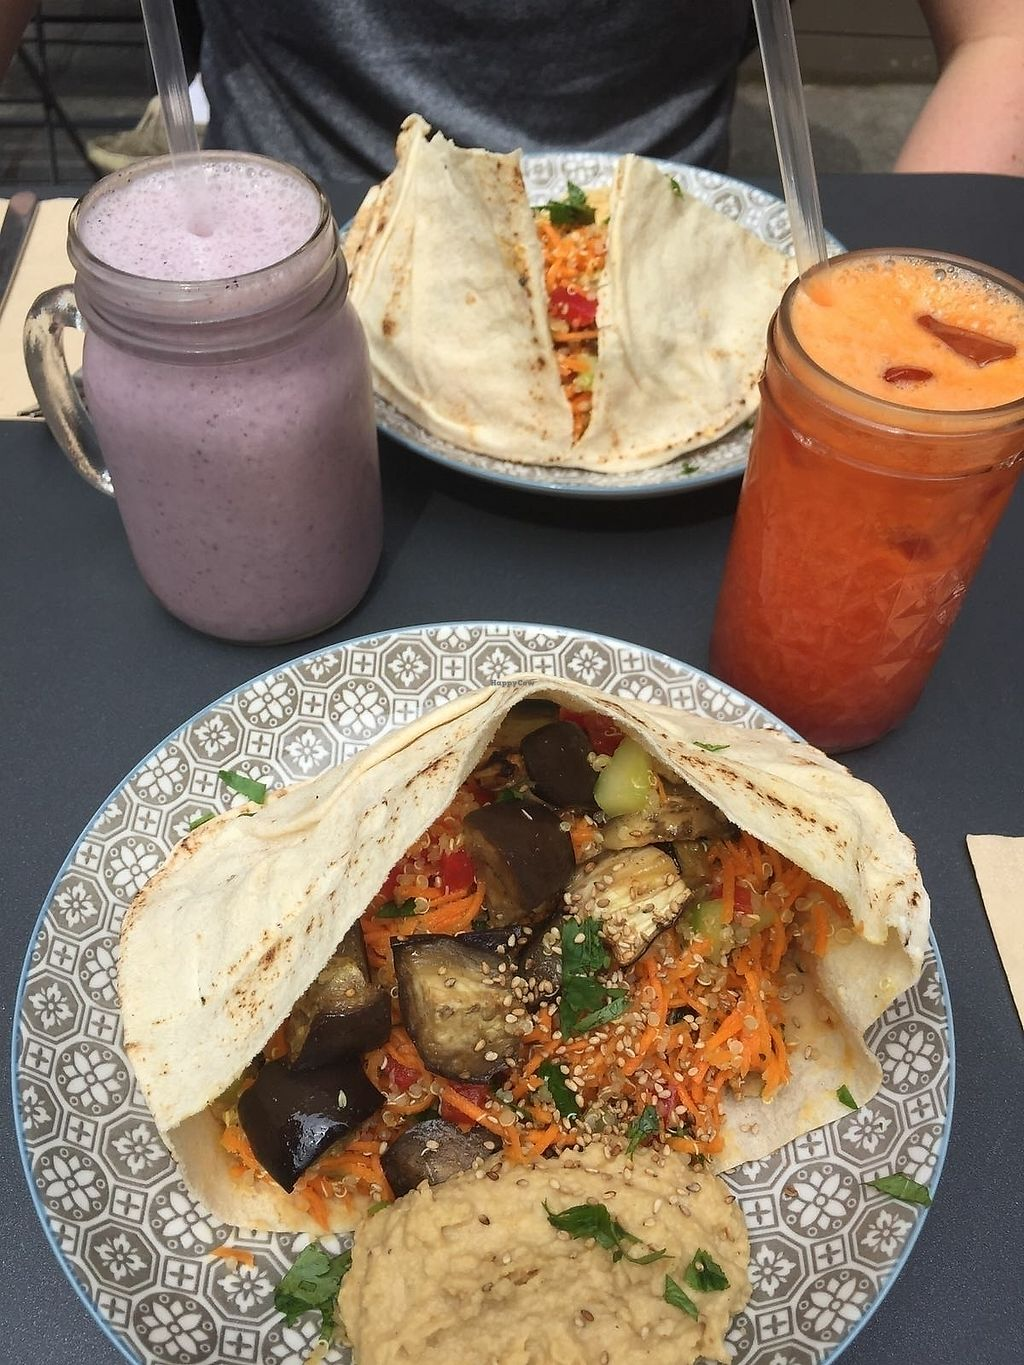 """Photo of Positive Cafe  by <a href=""""/members/profile/CraigKerr"""">CraigKerr</a> <br/>Vegan wraps, smoothie and juice <br/> July 6, 2017  - <a href='/contact/abuse/image/73097/277102'>Report</a>"""